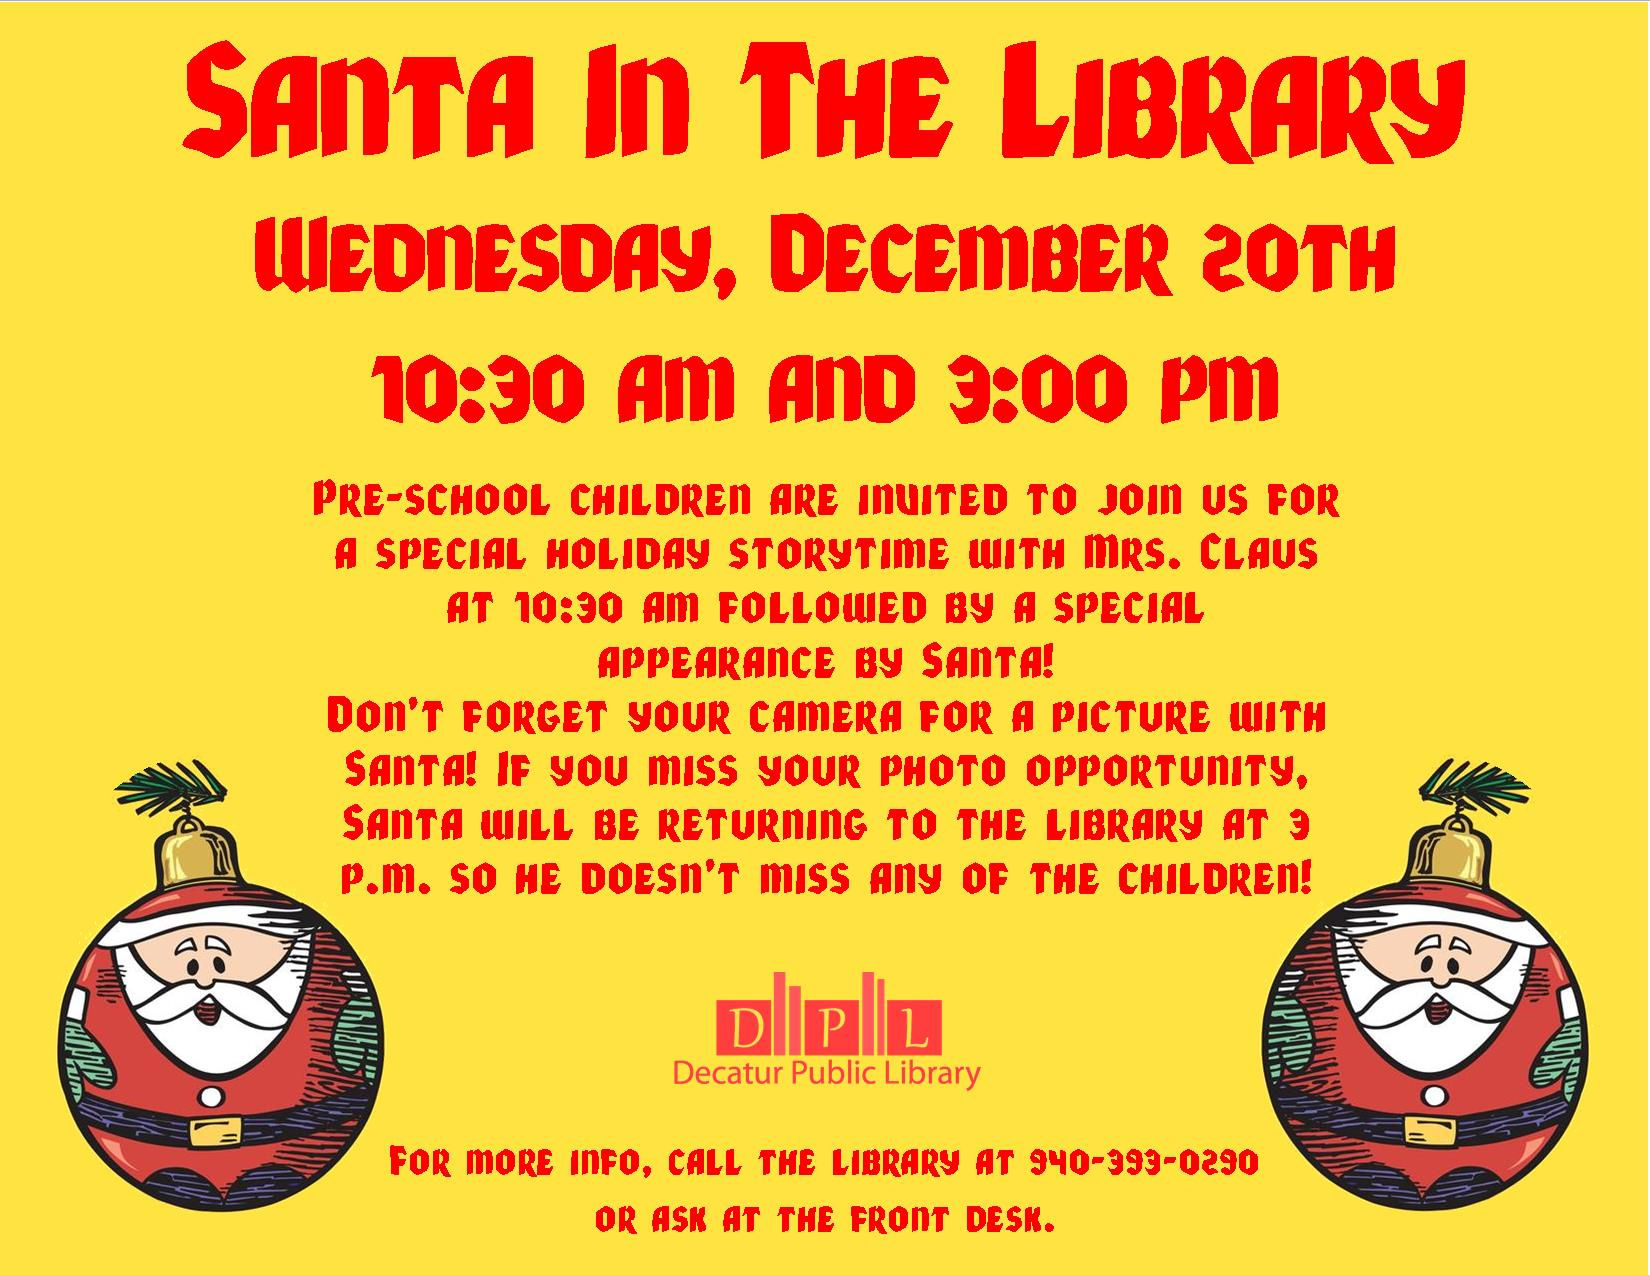 Santa in the library